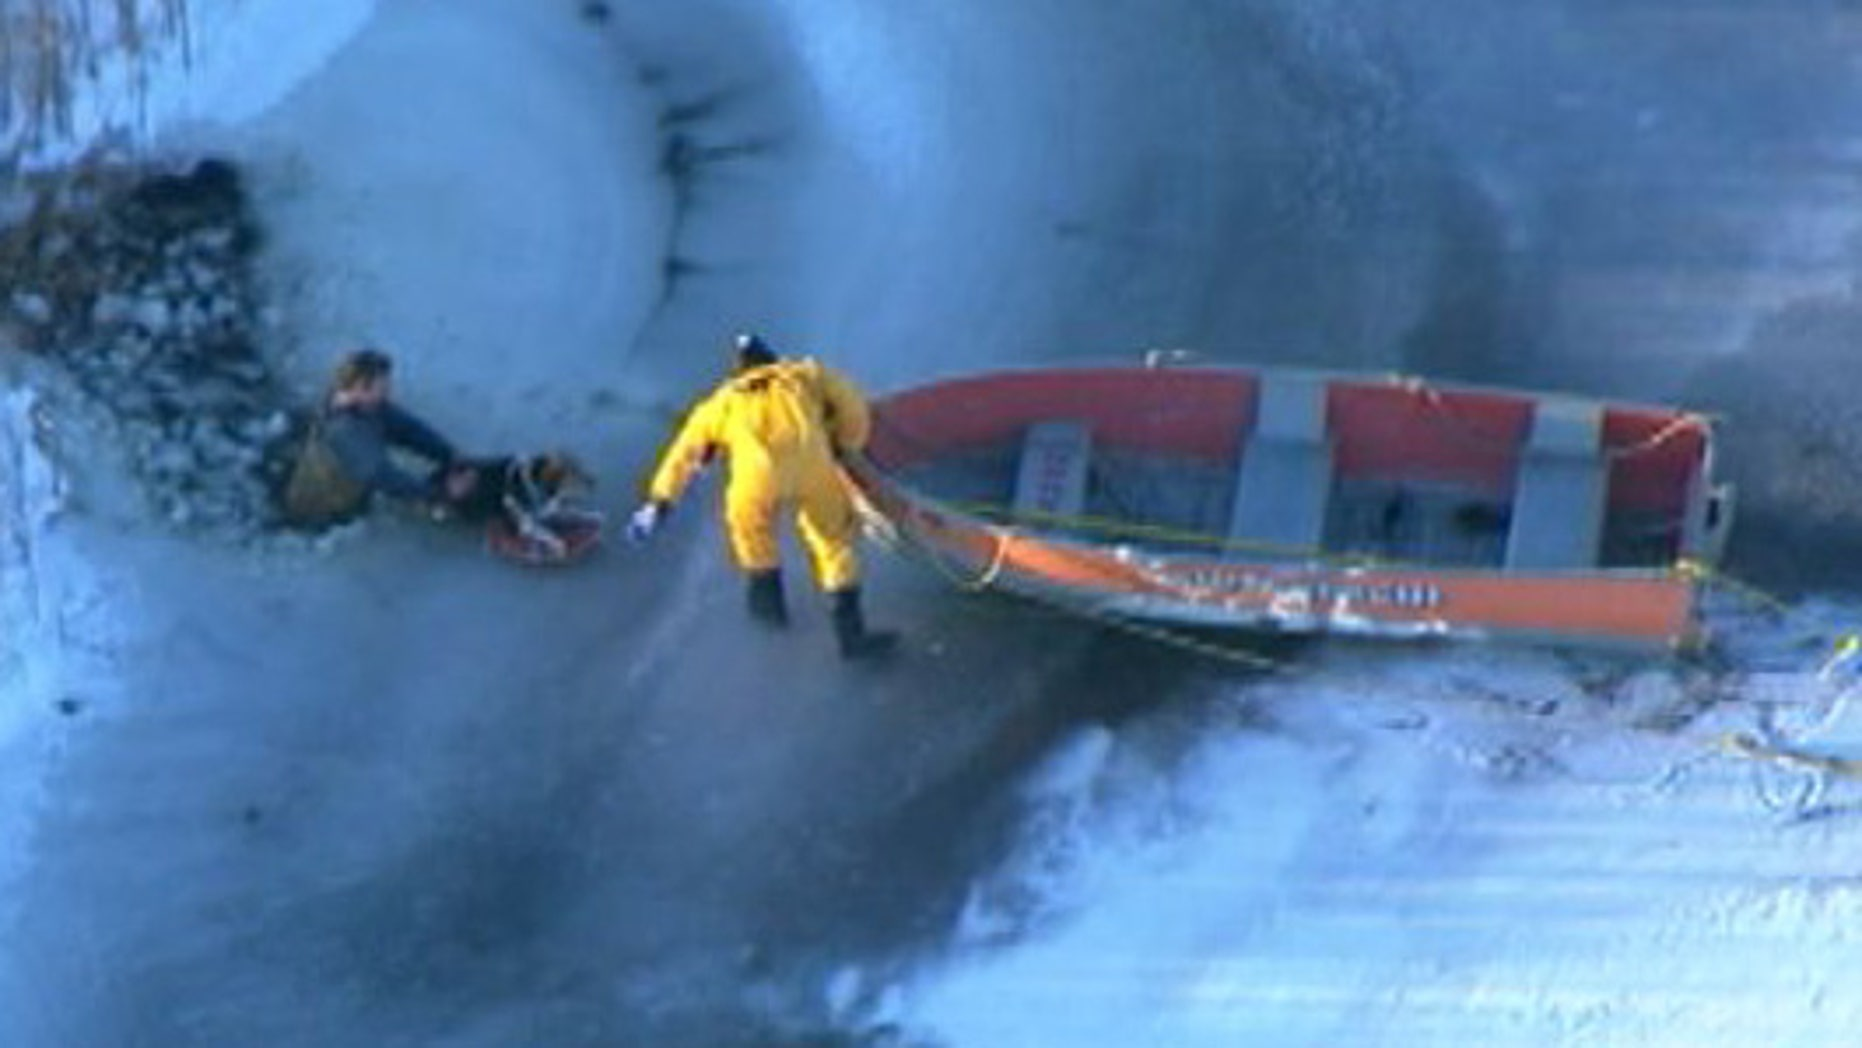 This image shows rescue workers pulling a Michigan man and a dog from frigid waters after the ice broke.